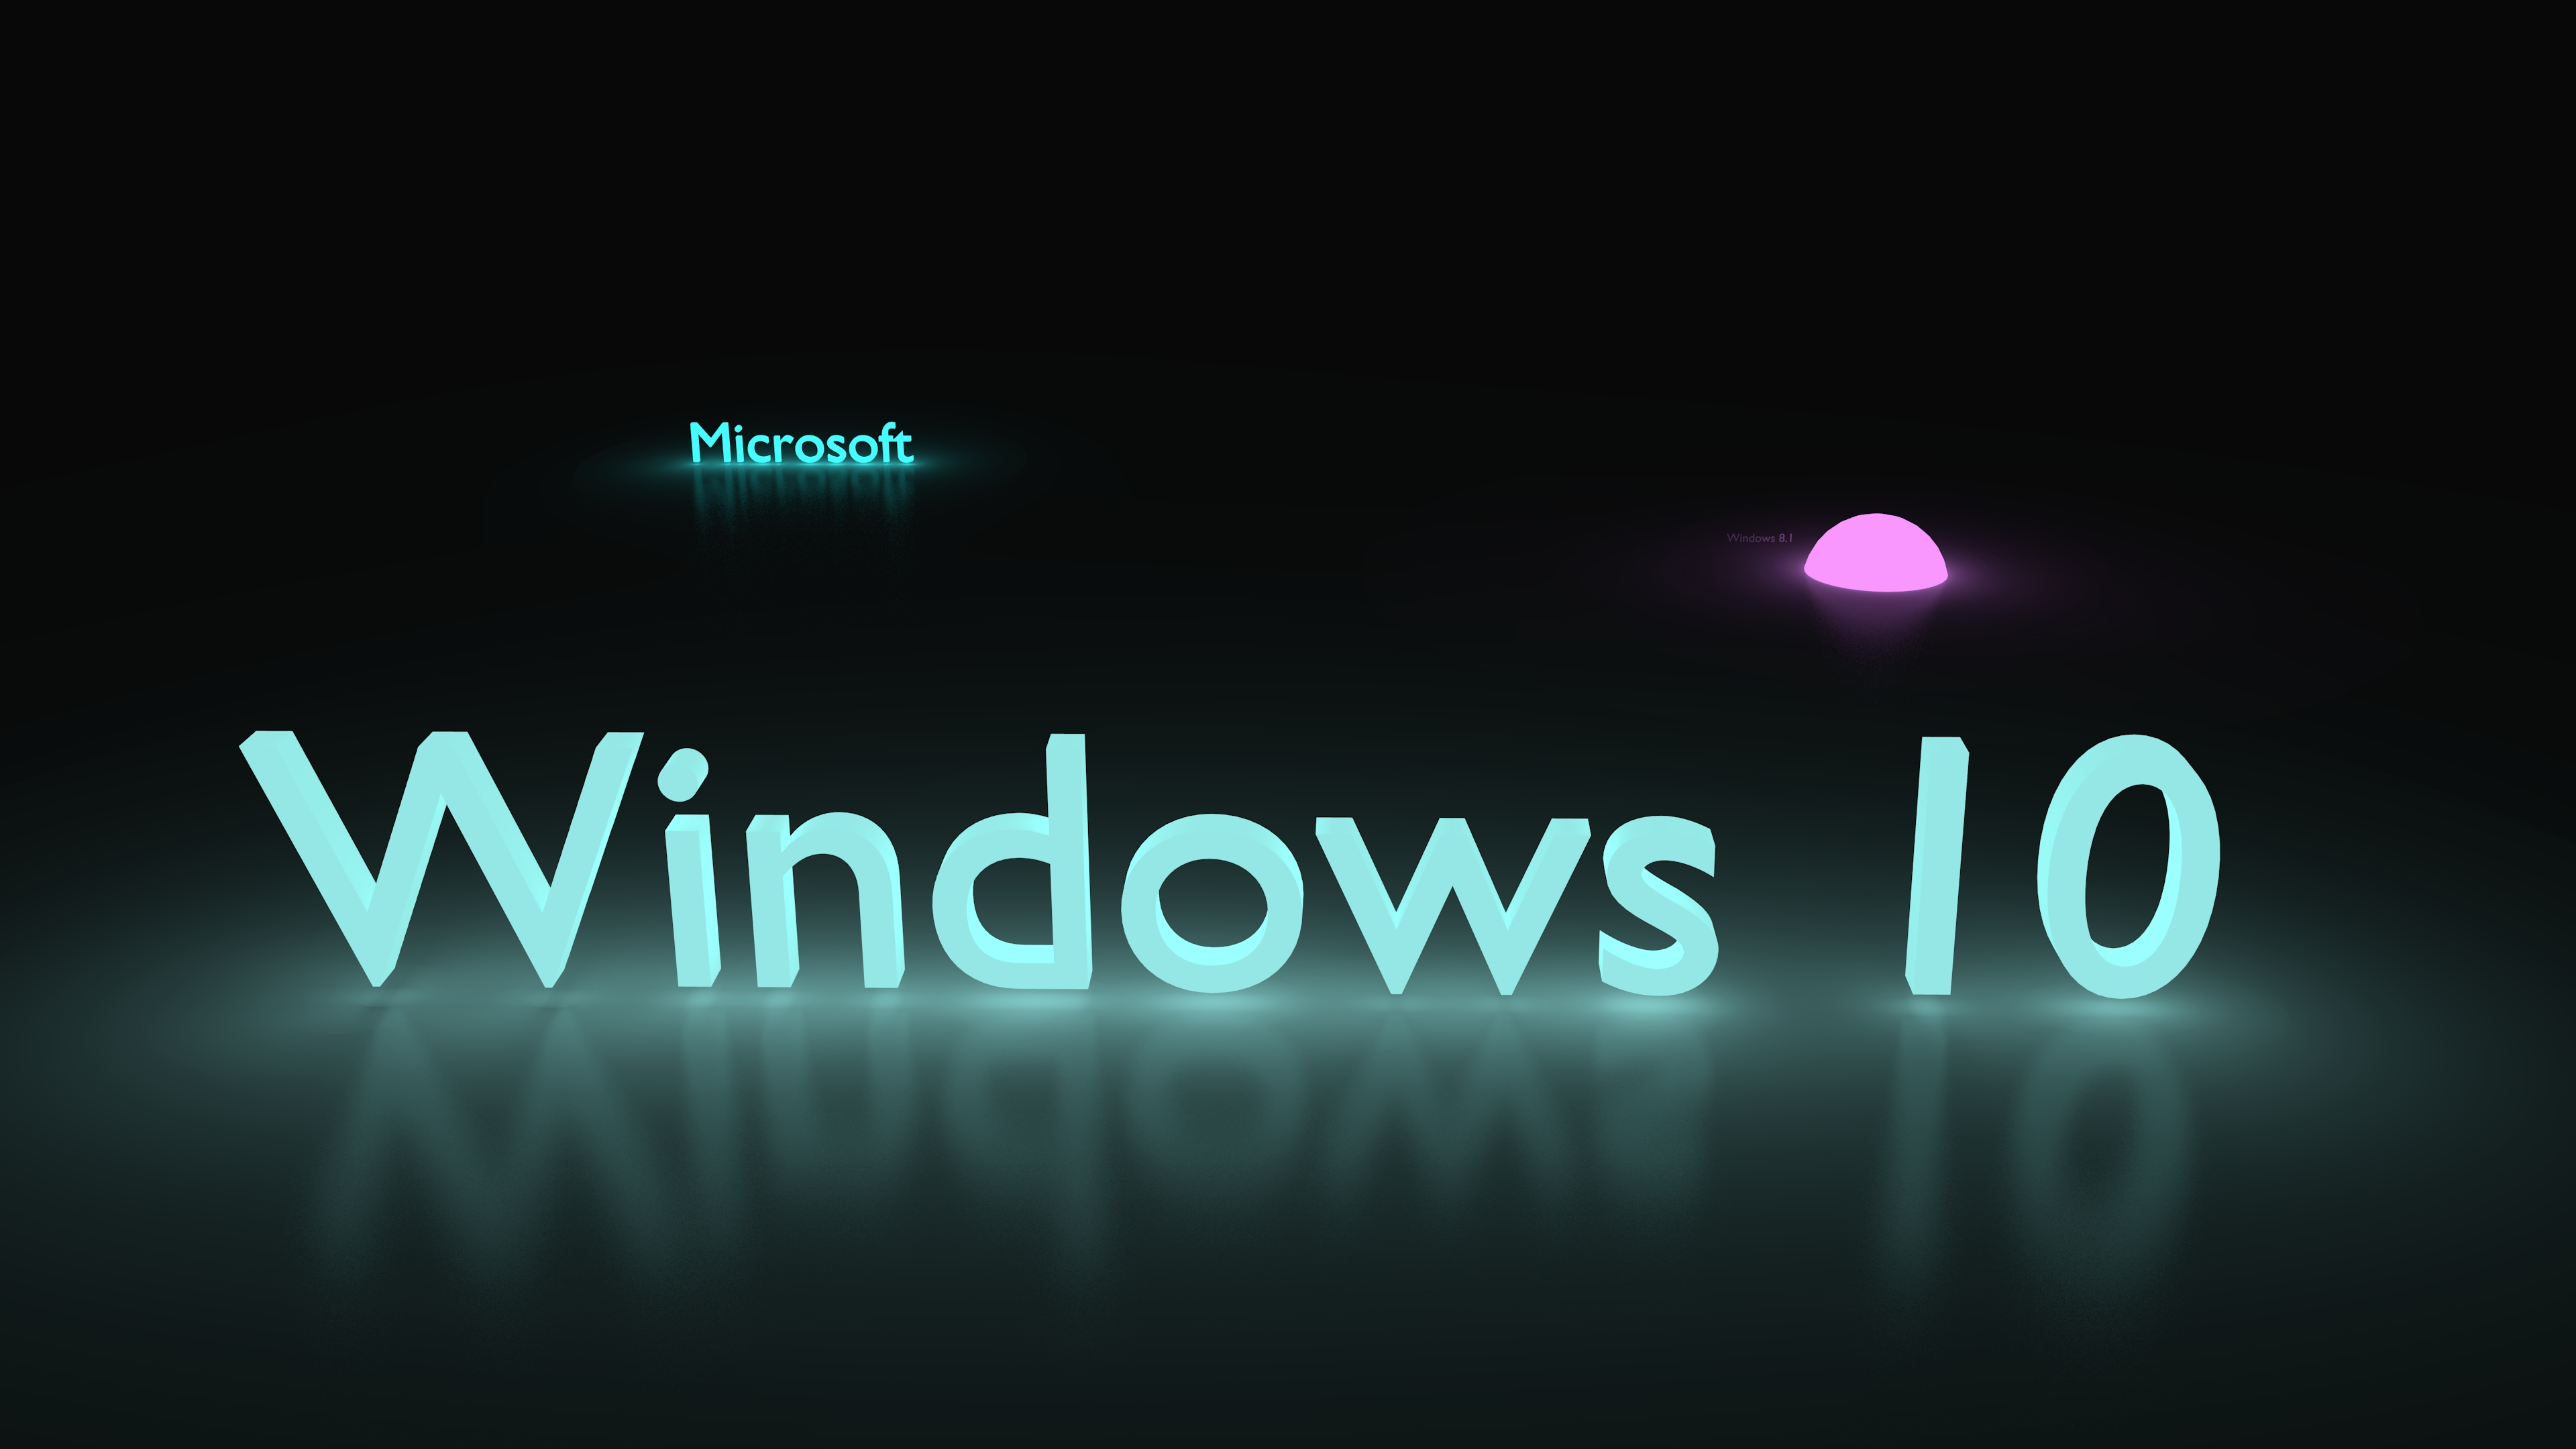 Windows 10 Glowing Blue HD Wallpaper